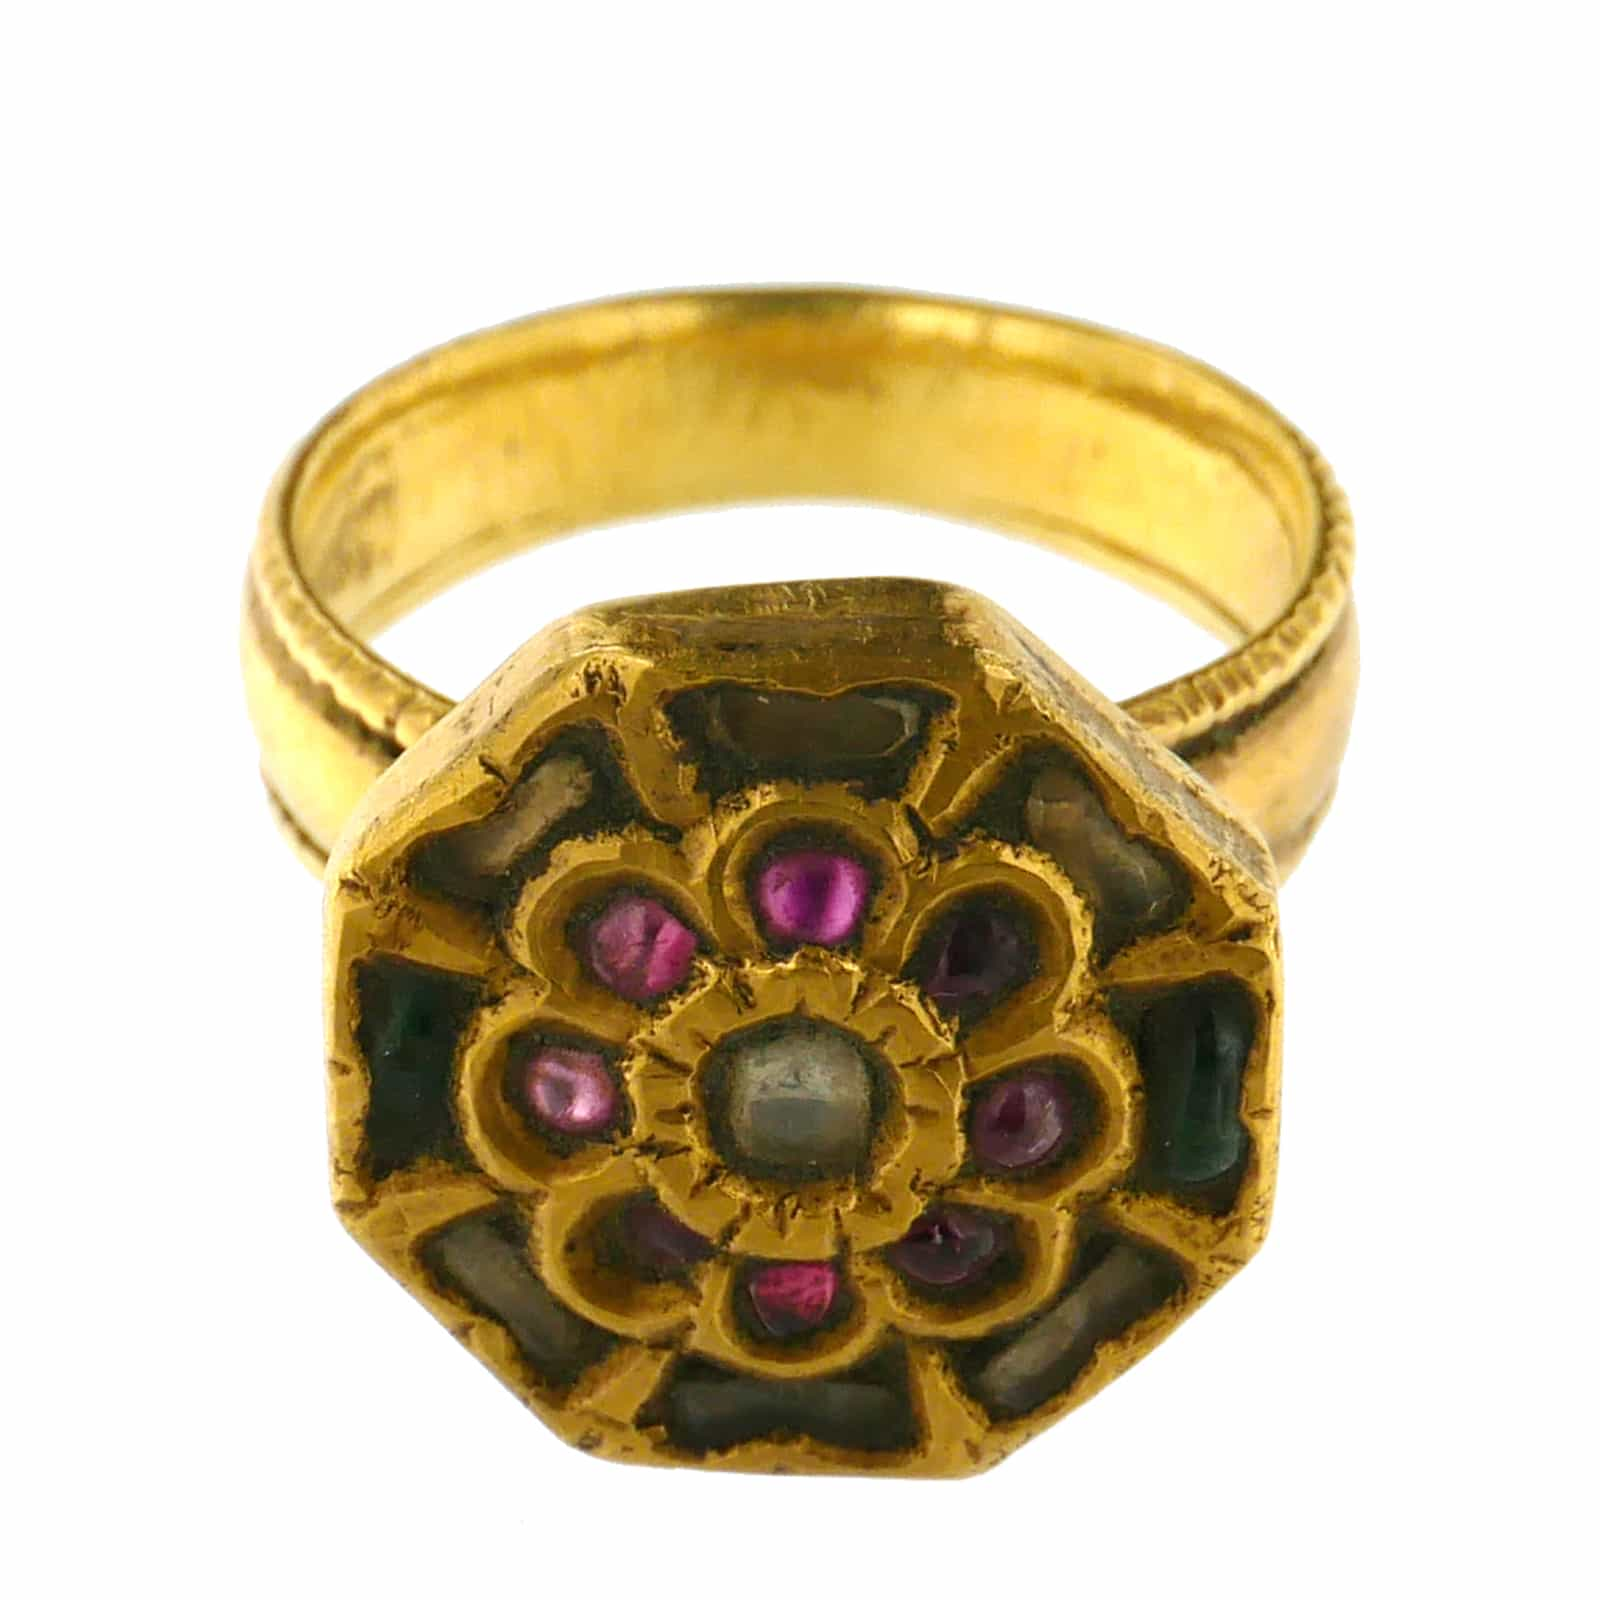 Indonesian Antique Gold Ring